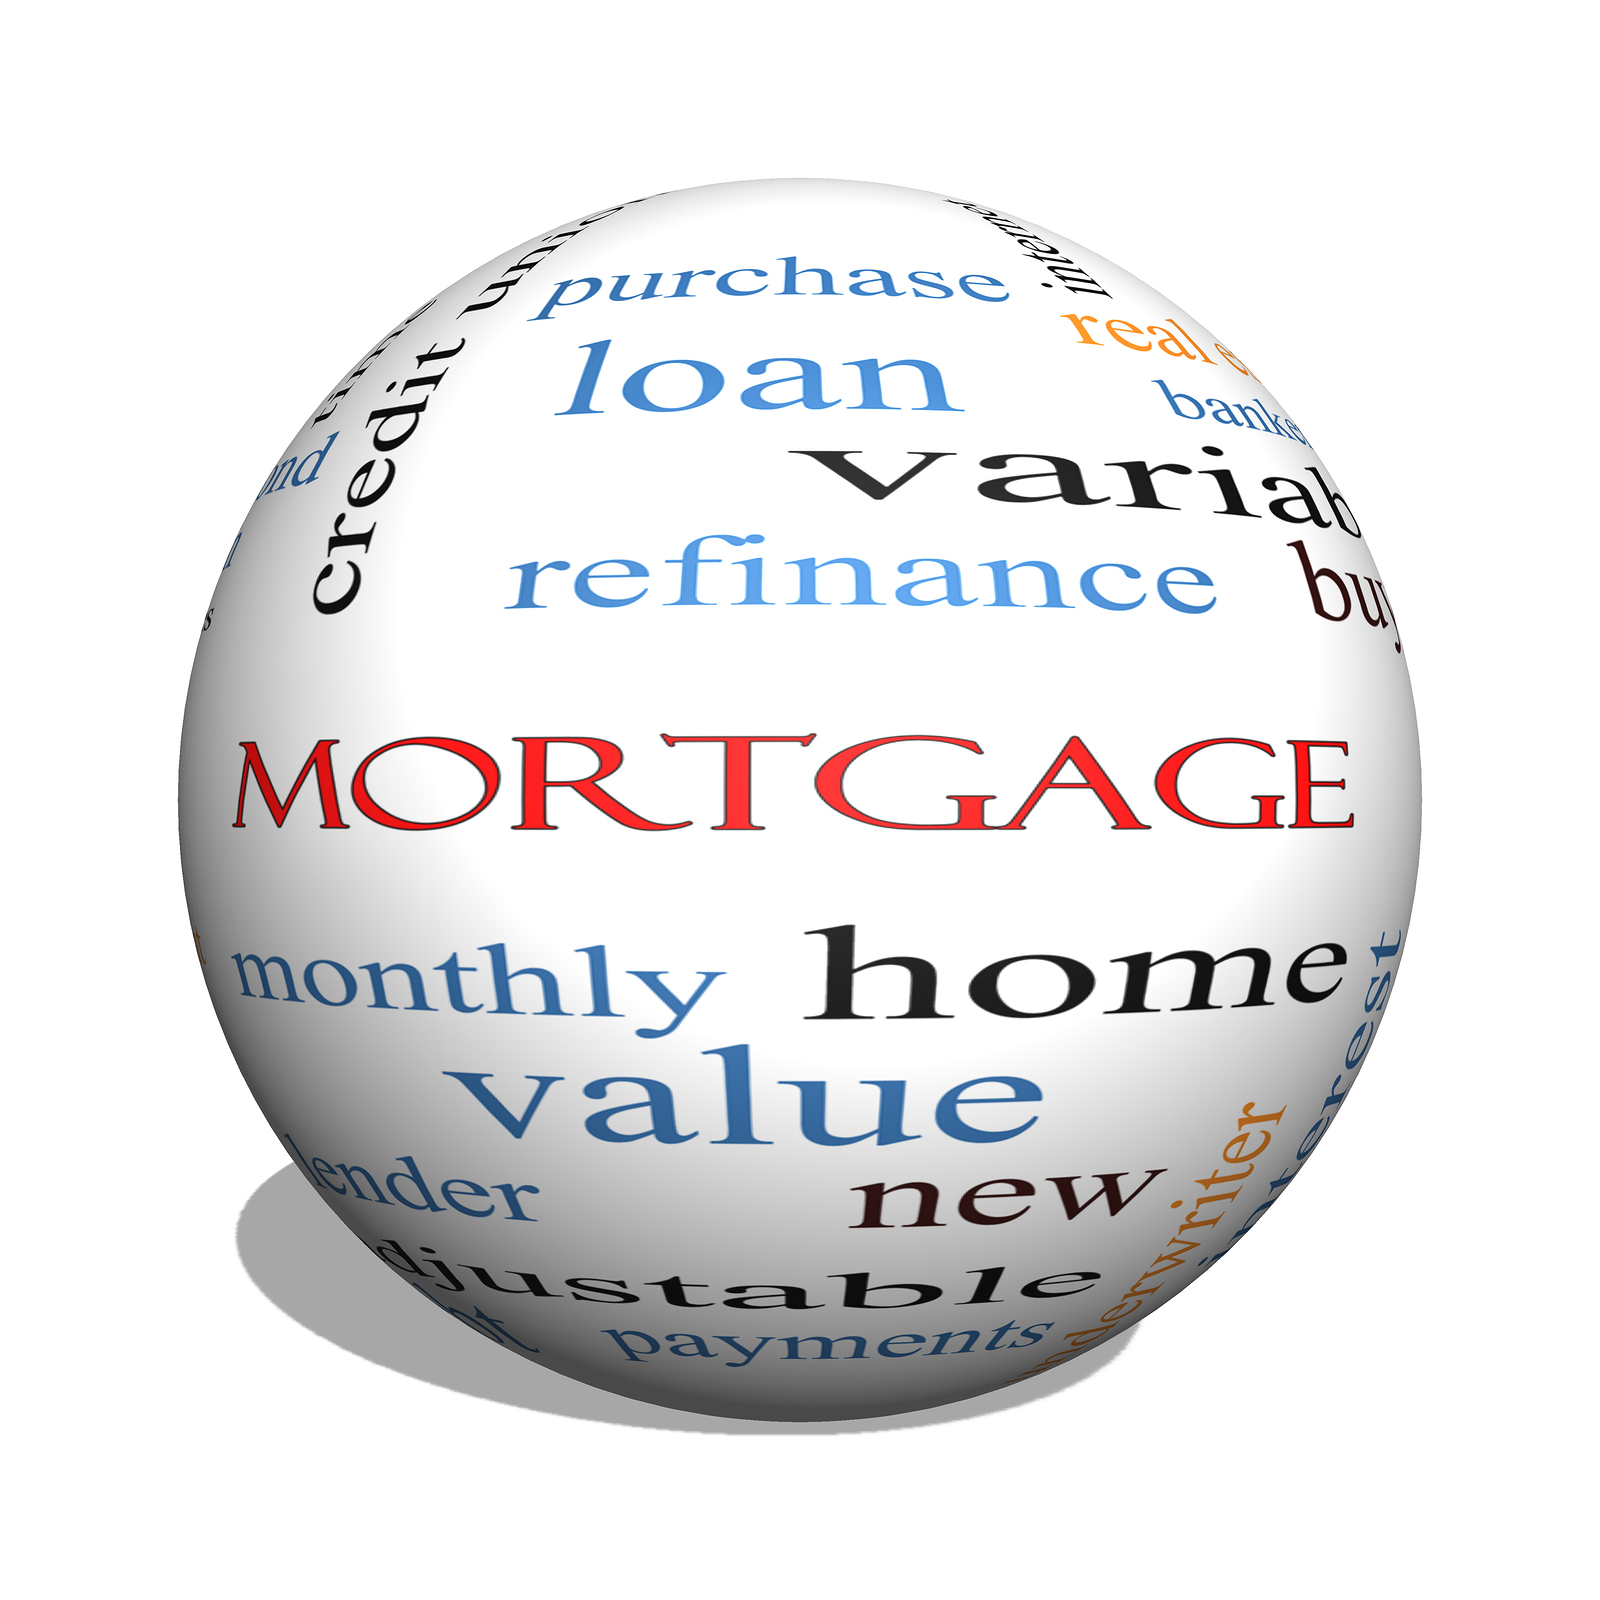 mortgage underwriting - Latest News, Tips and Trends about ...